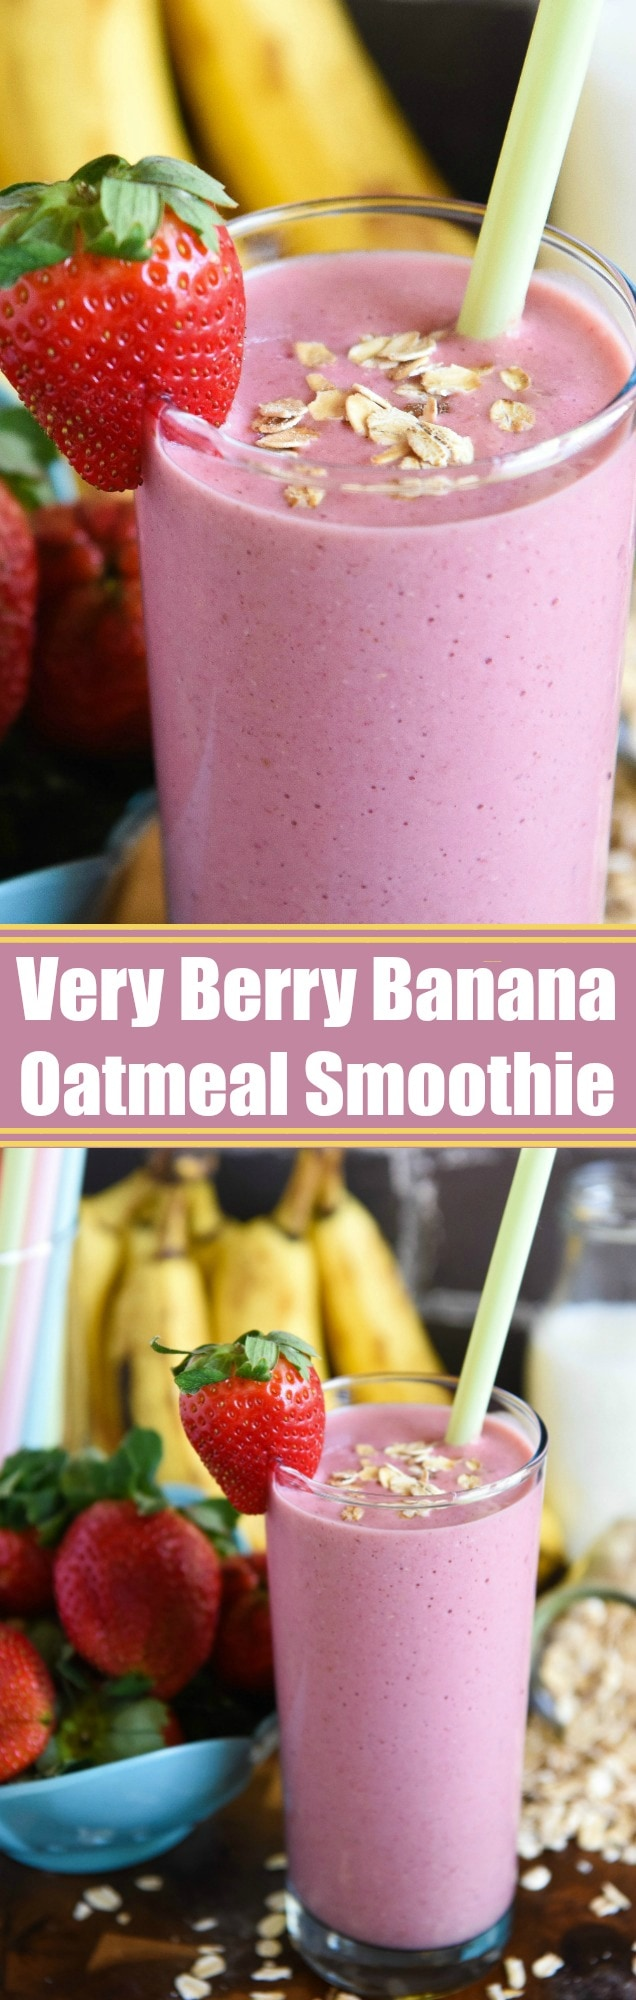 Very Berry Banana Oatmeal Smoothie: just five ingredients to make this fruity breakfast smoothie loaded with strawberries, bananas and oats to keep you full!